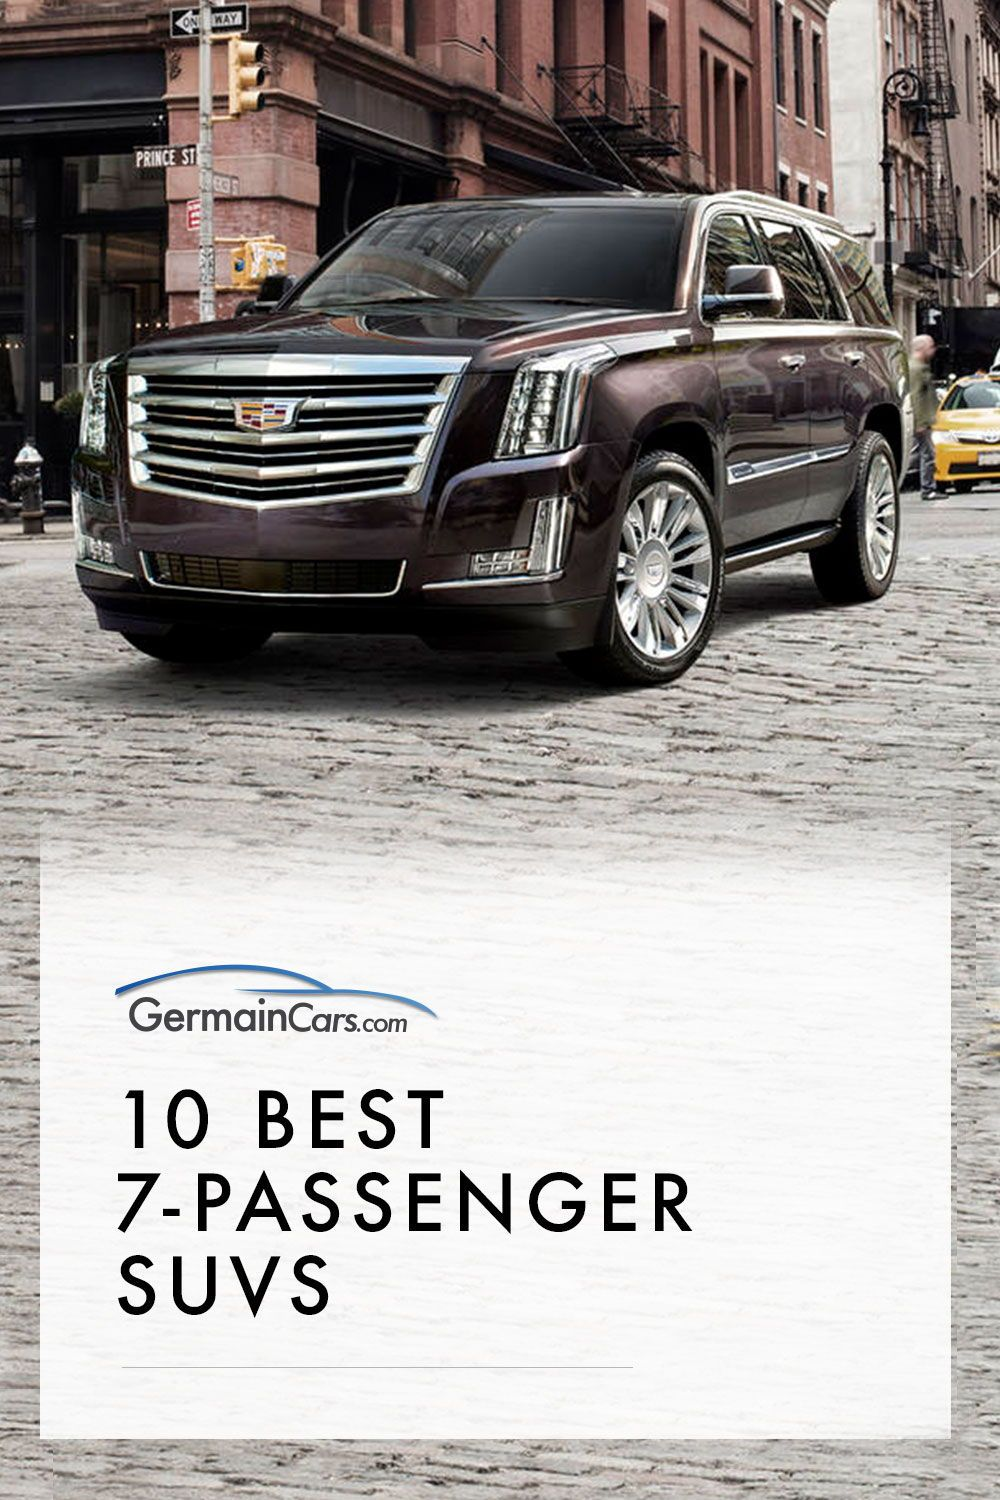 10 Best 7 Passenger Suvs Best 7 Passenger Suv Passenger Best New Cars